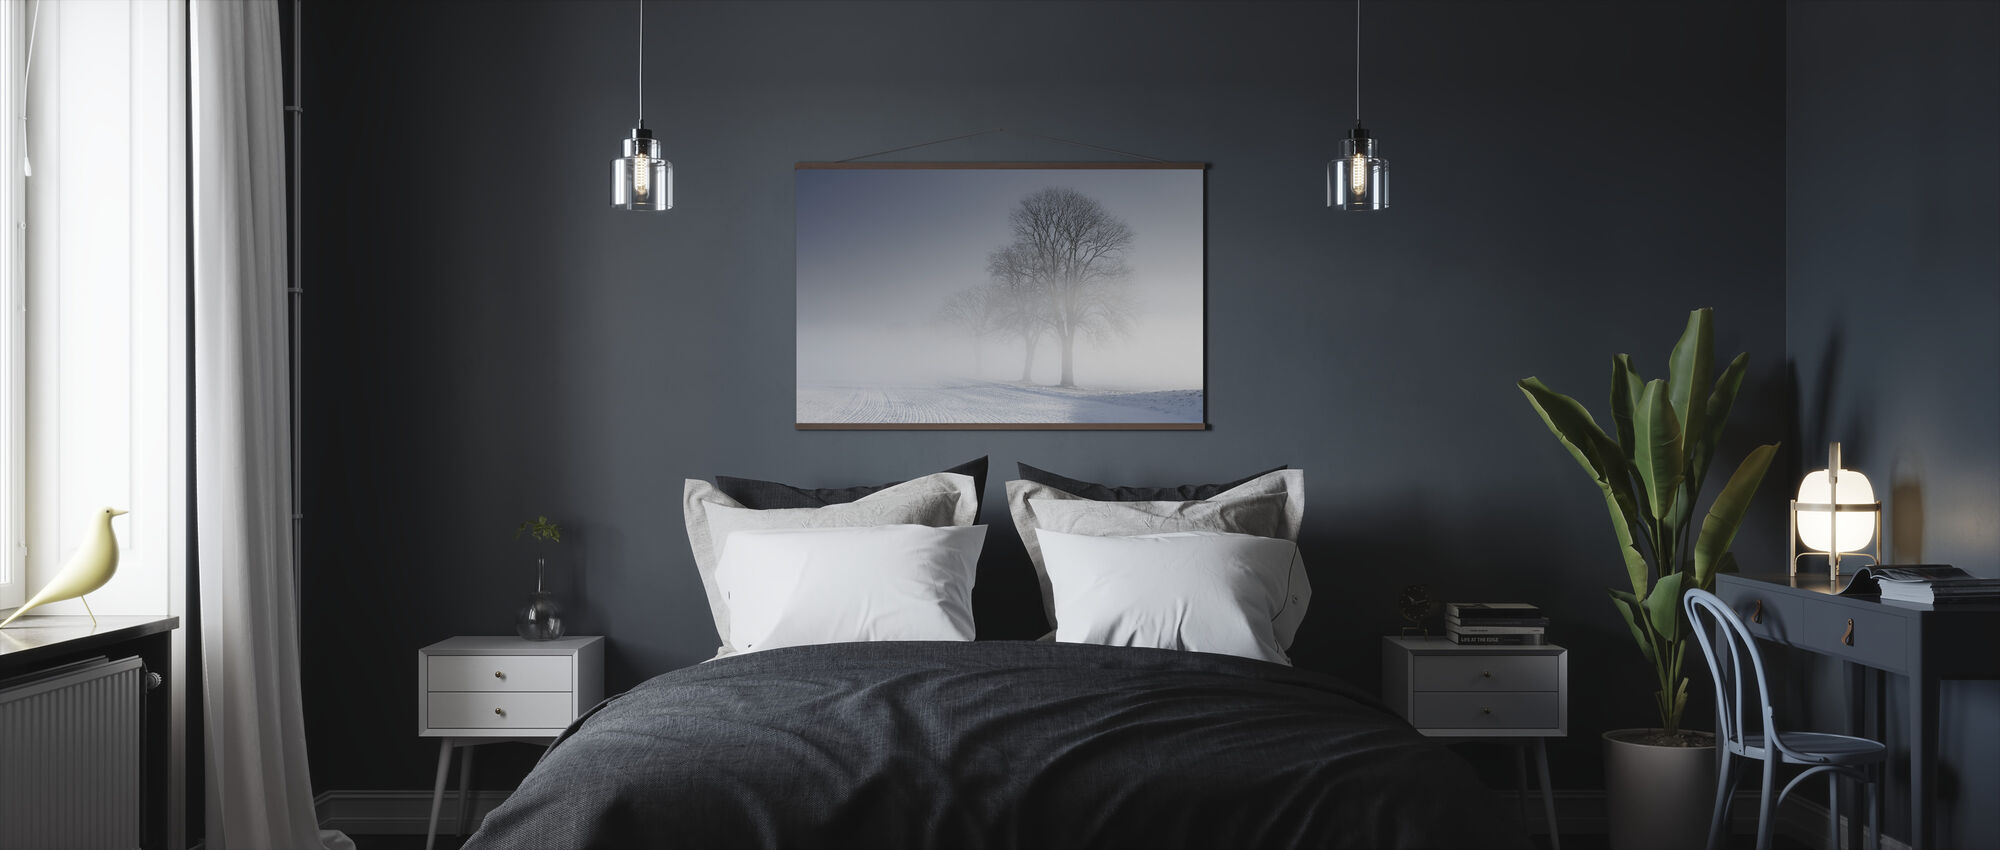 Winter Landscape in Skabersjö, Sweden - Poster - Bedroom